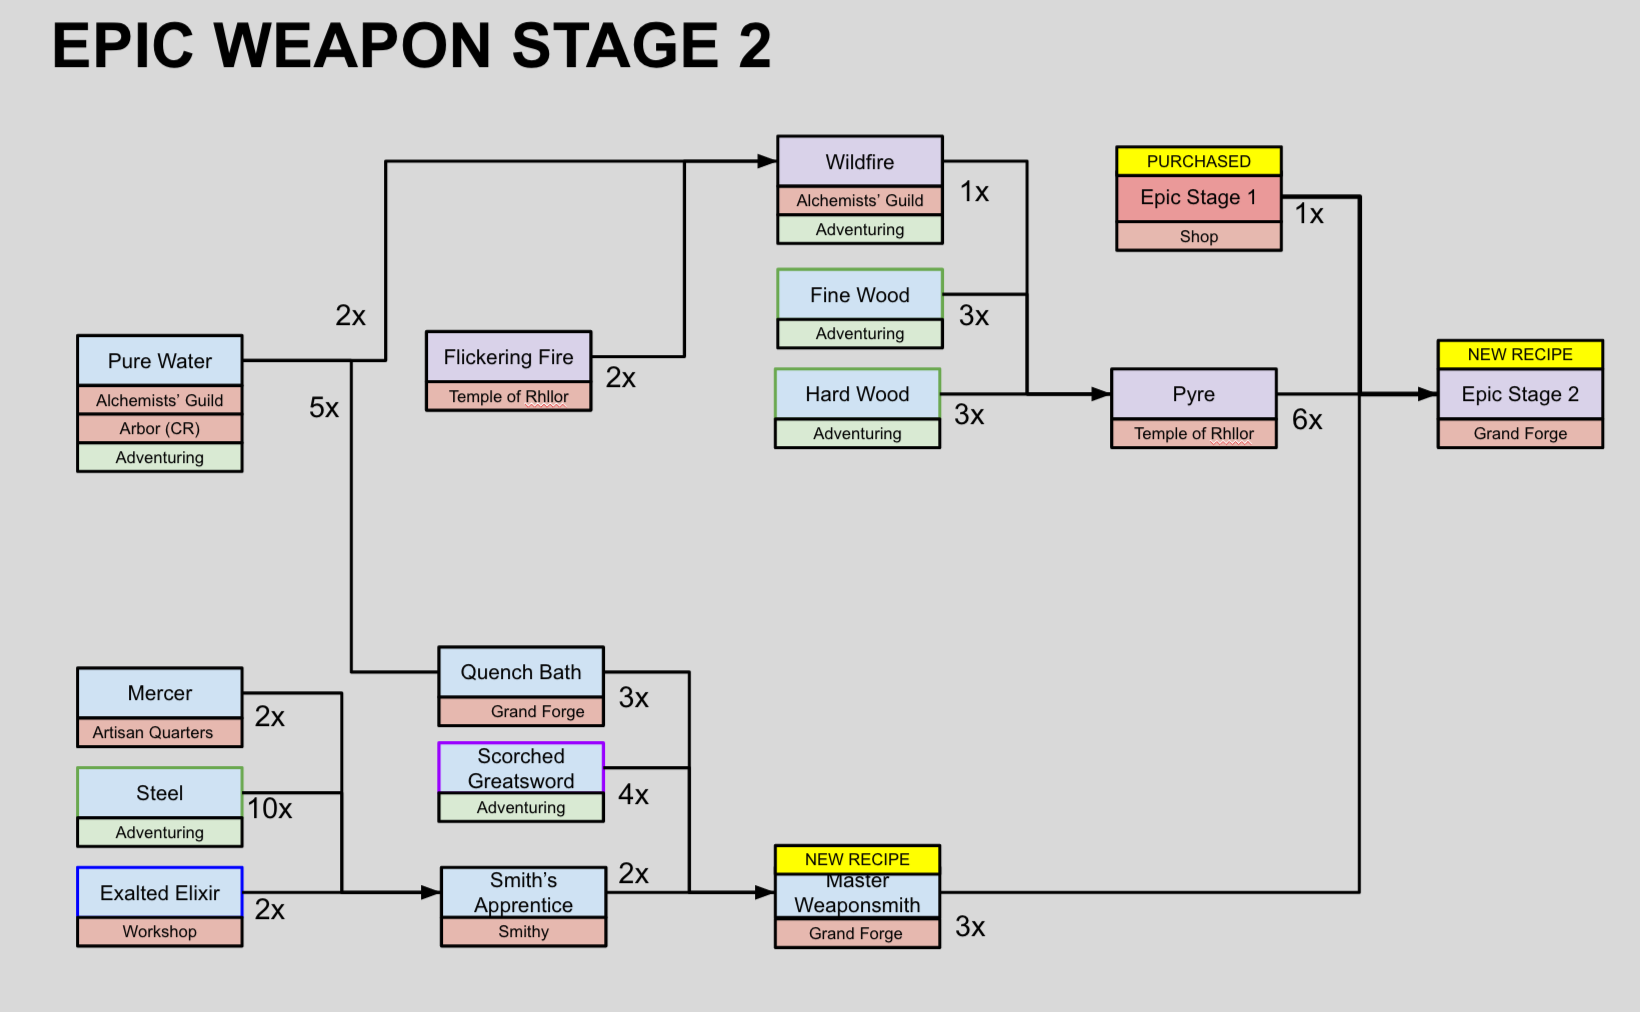 epic_weapons_stage2